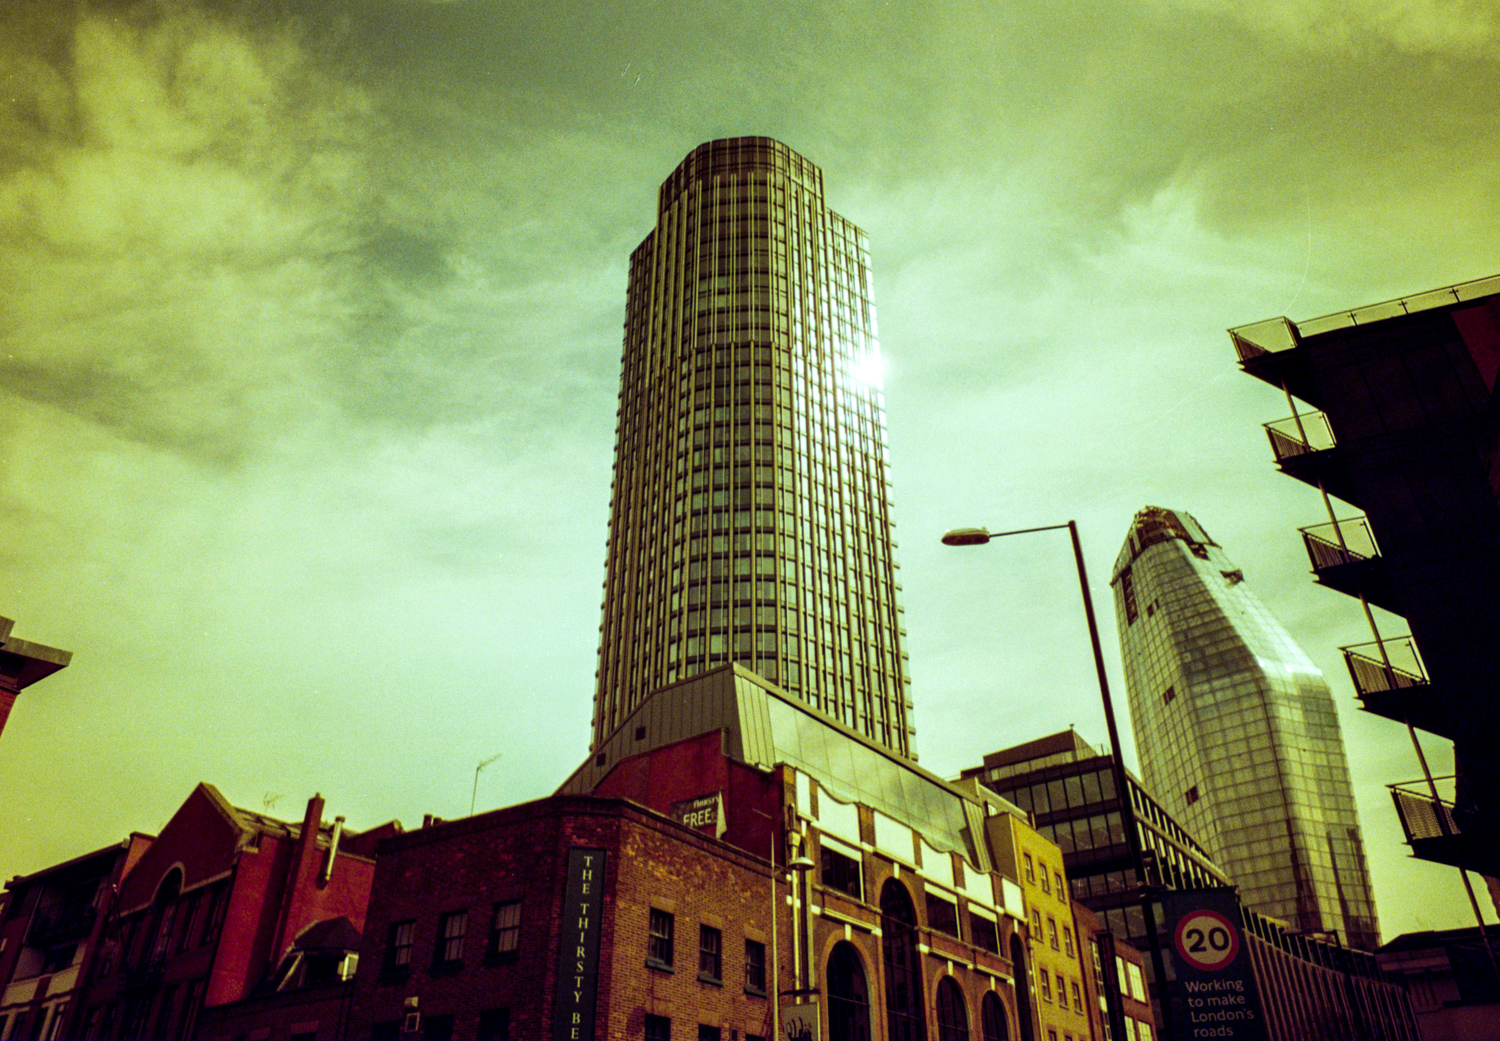 lomography-redscale-examples-2.jpg